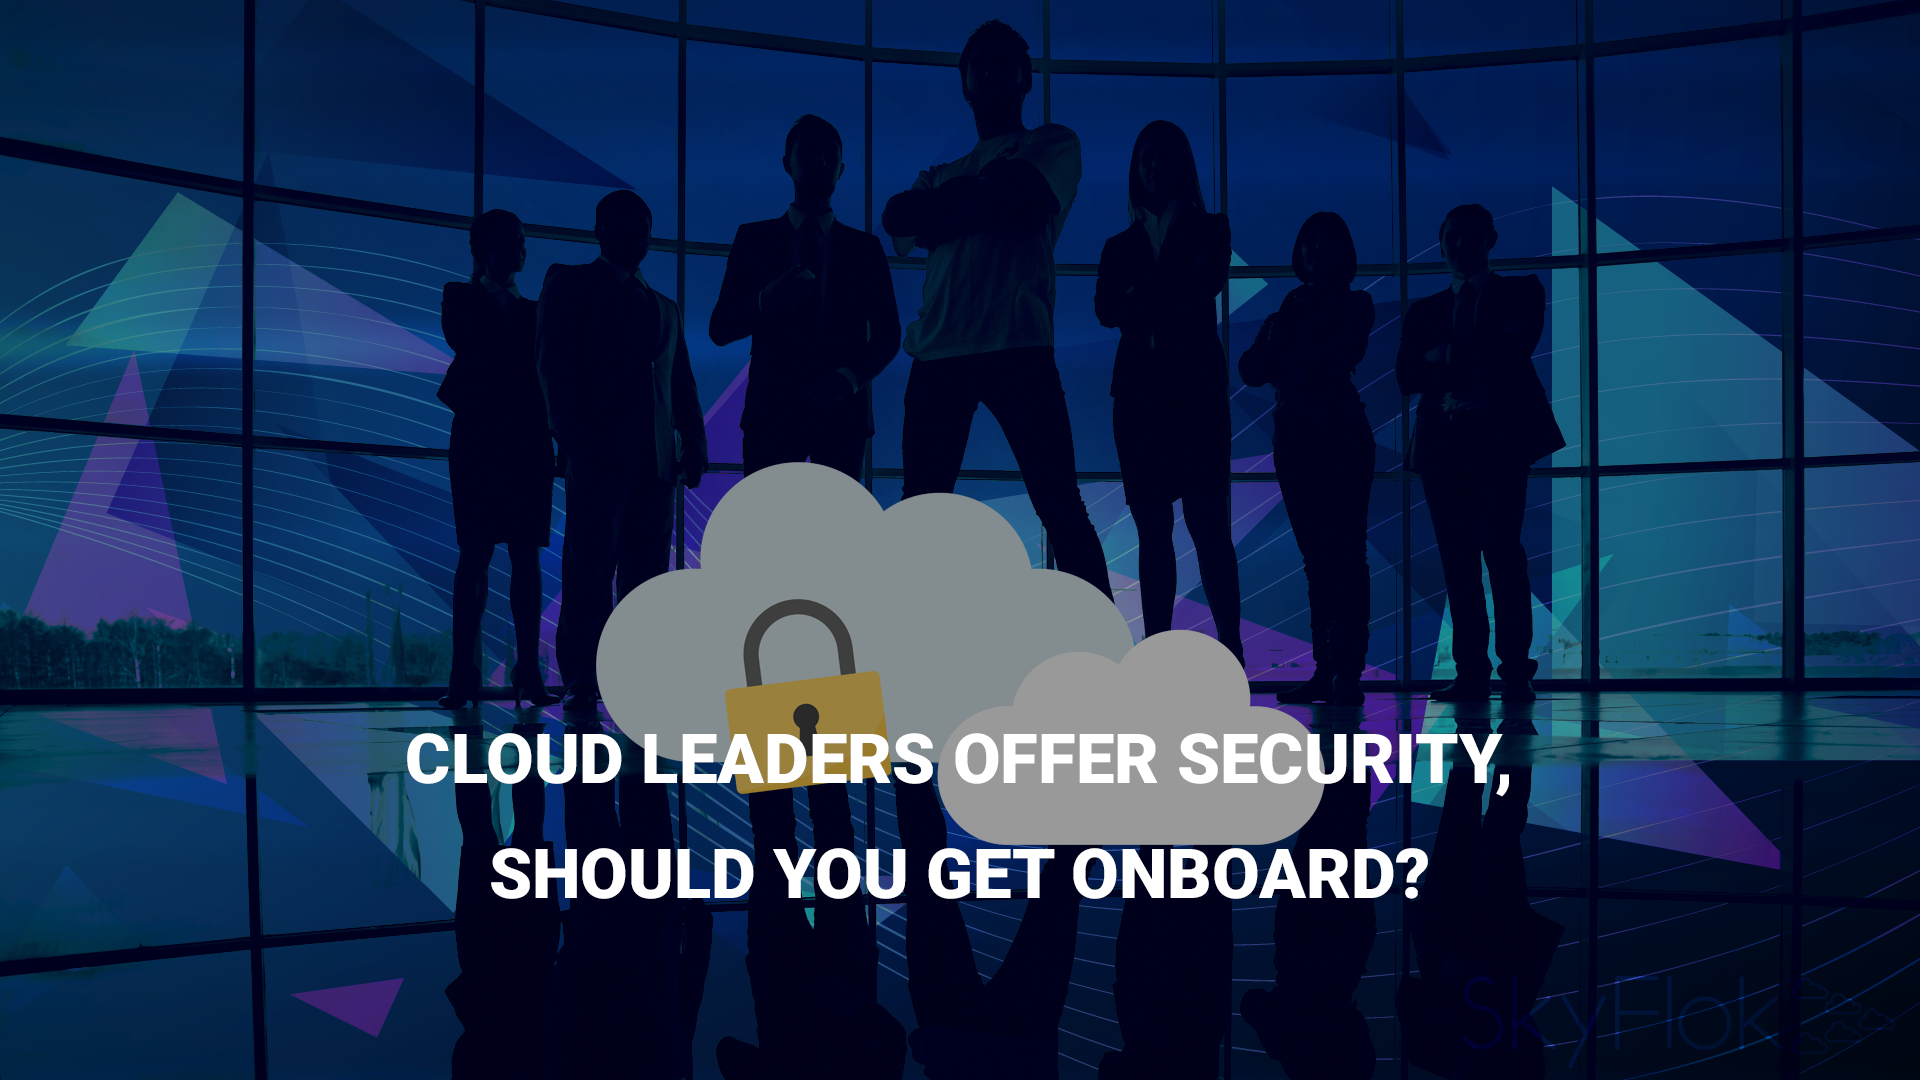 Cloud leaders offer security, should you get onboard?